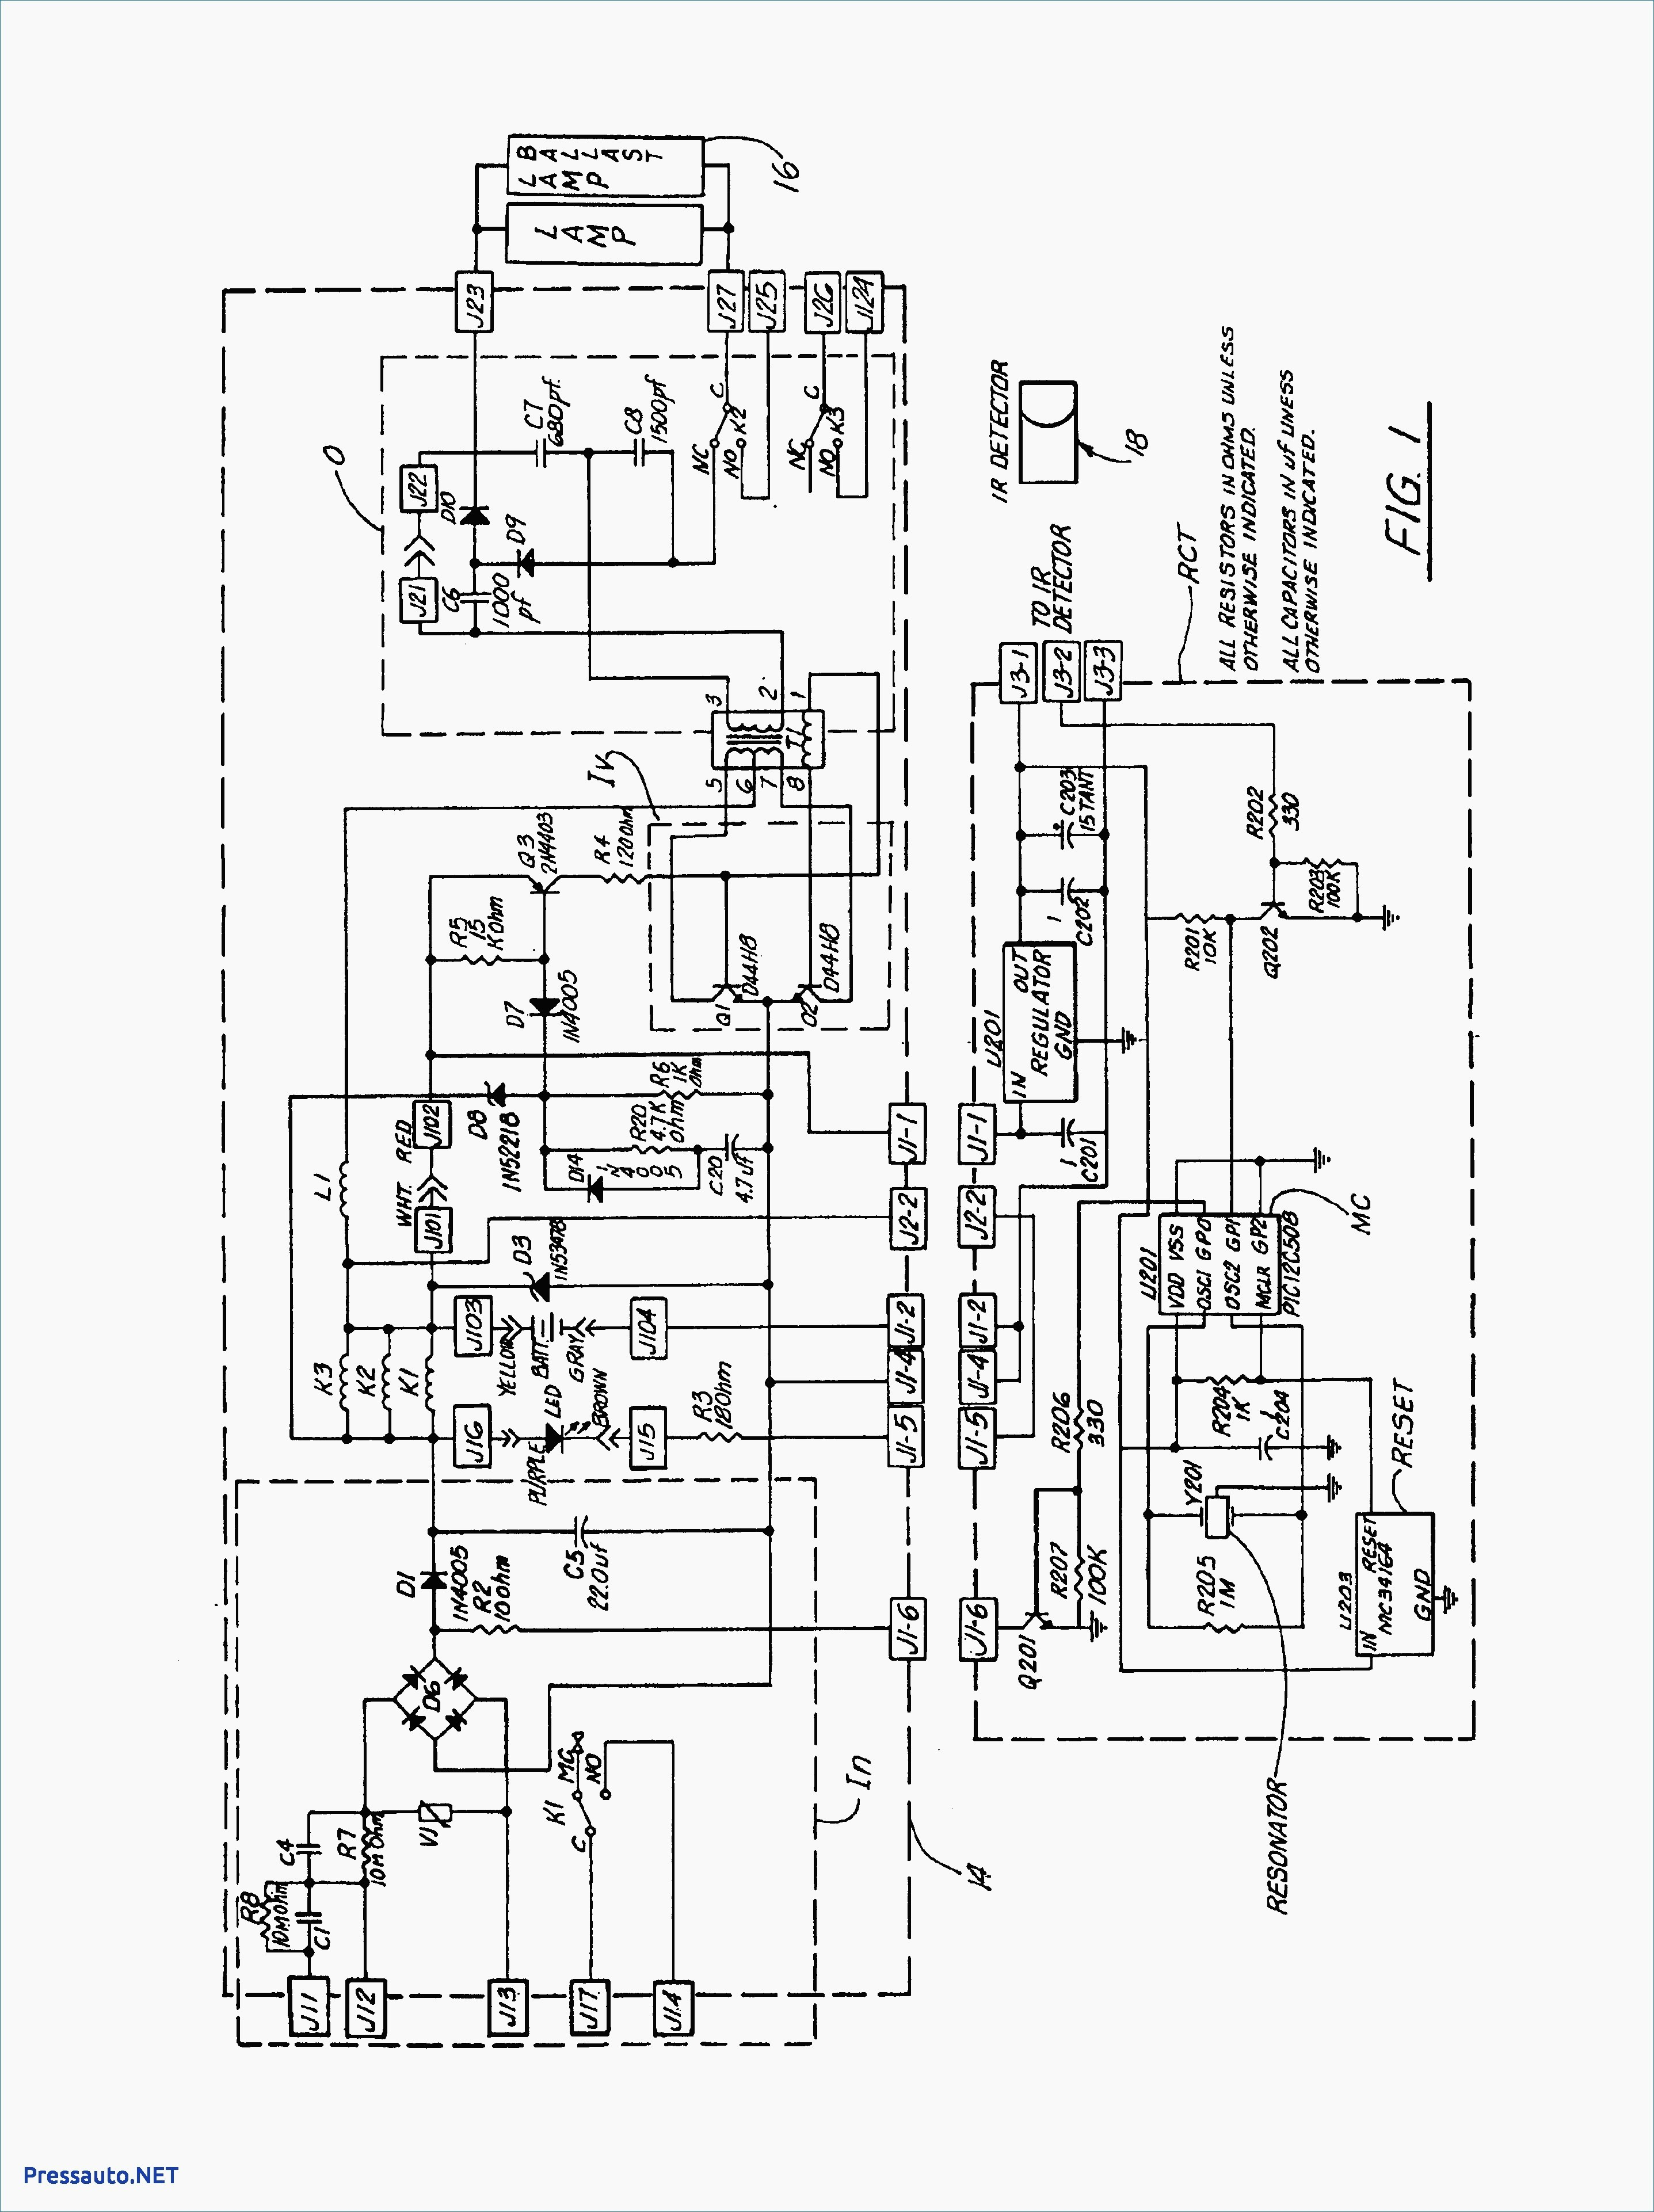 Wiringiagram Symbols Home Building Physical Connections Wires Electrical Circuit Sample Advance Markimming Ballast